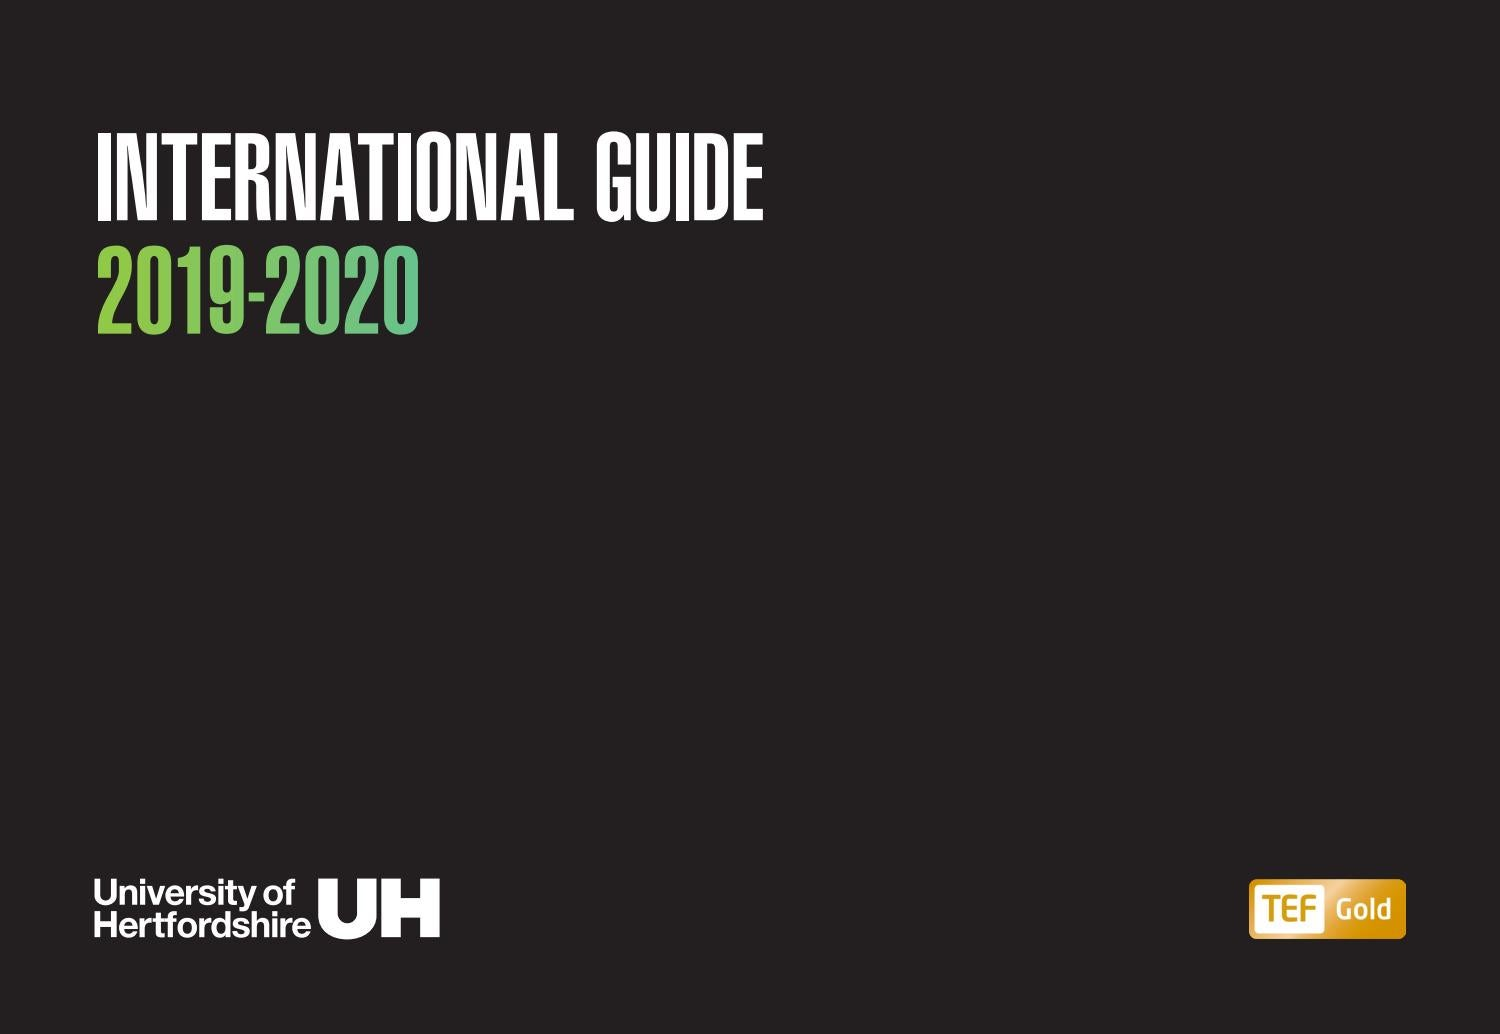 bc89b95dced7 International Guide 2019/2020 by University of Hertfordshire - issuu